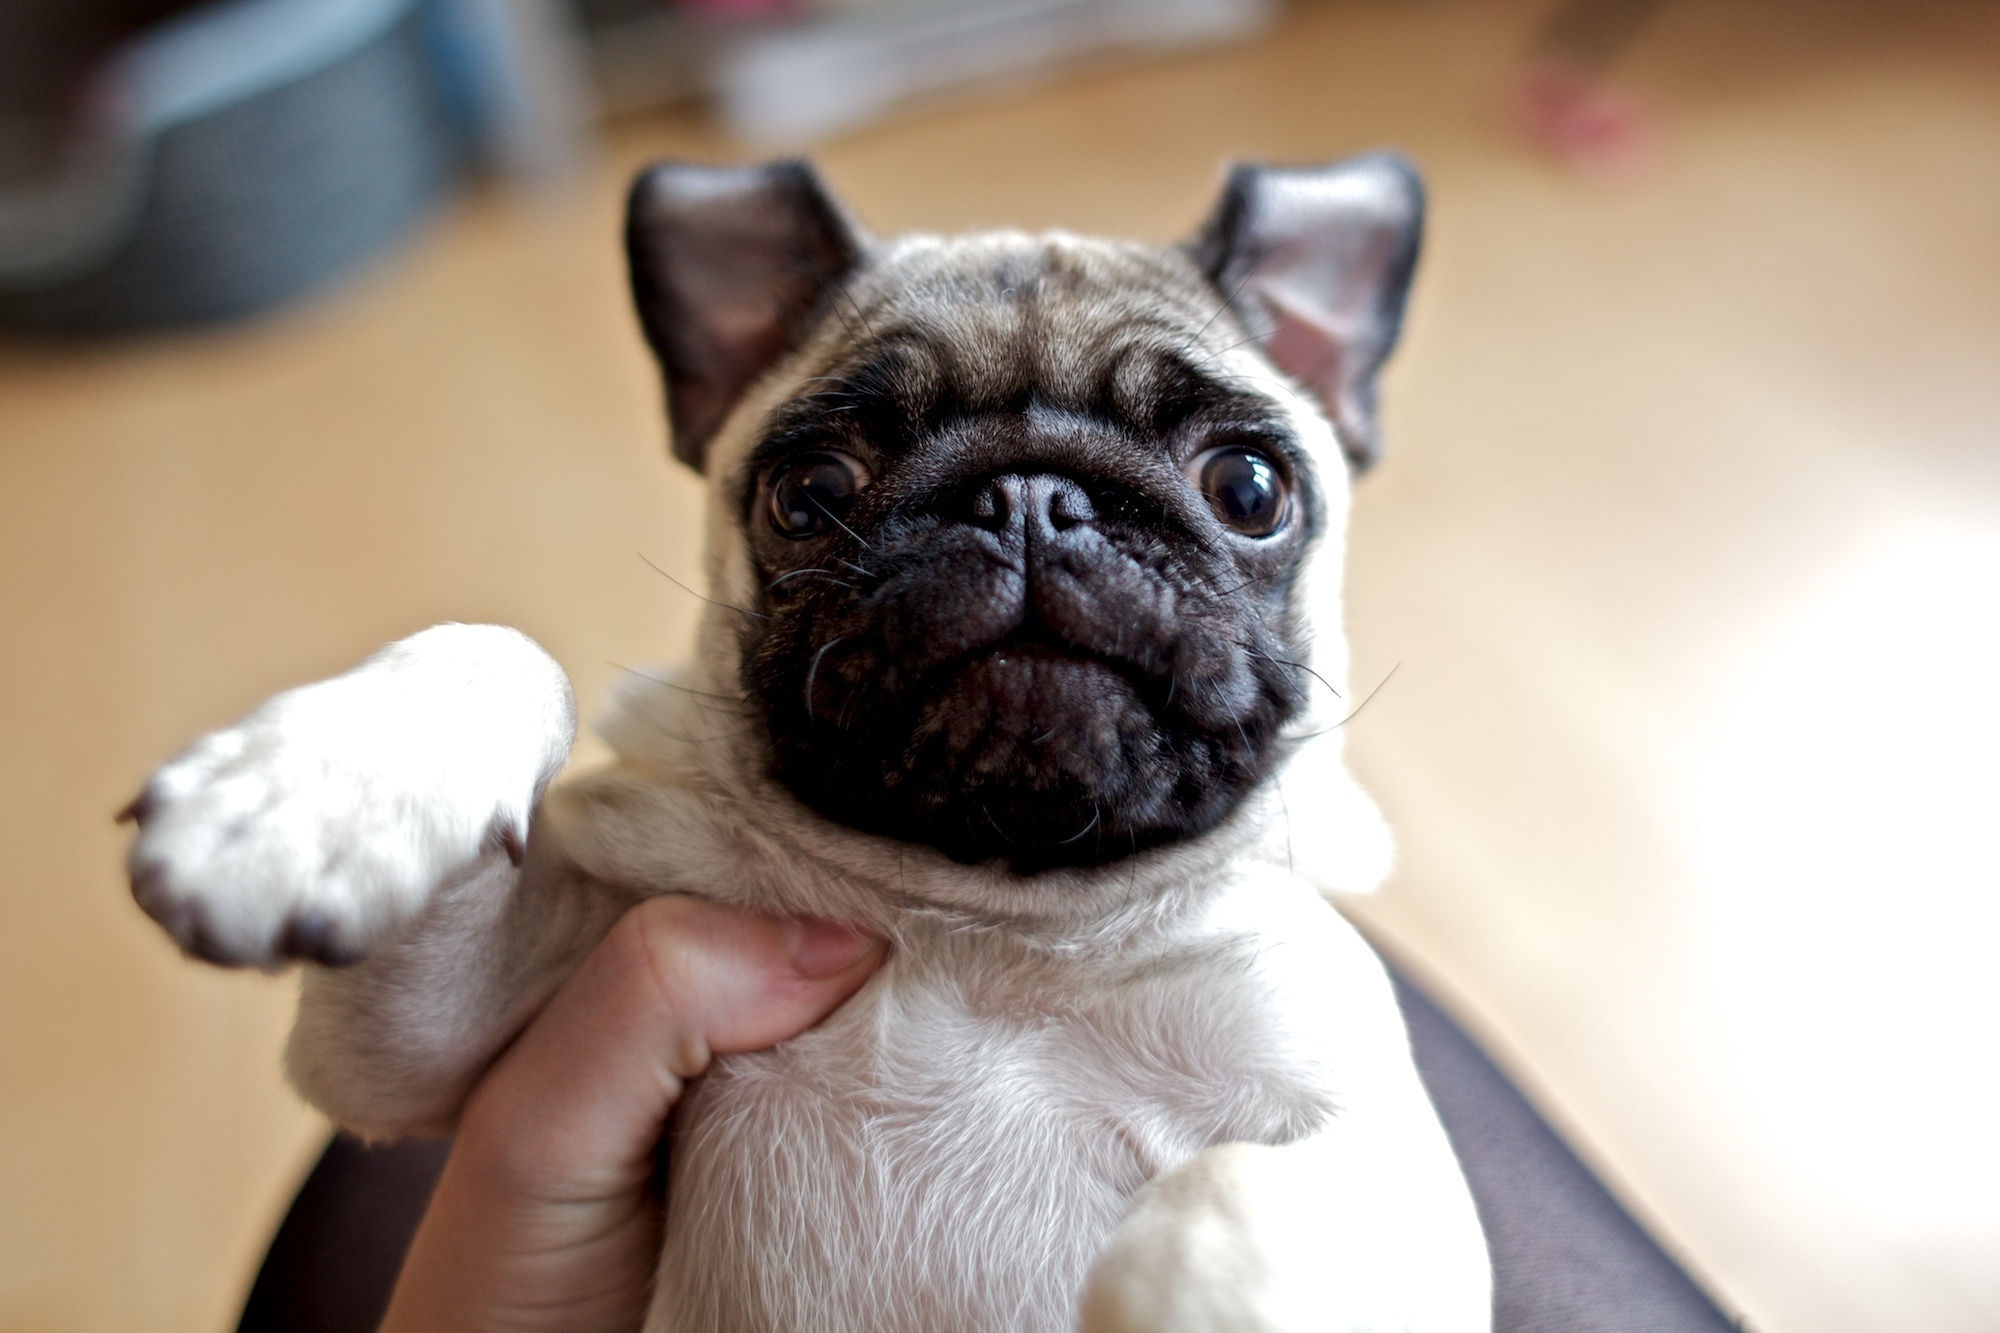 108903 download wallpaper Animals, Dog, Pug, Muzzle, Sight, Opinion, Kid, Tot screensavers and pictures for free